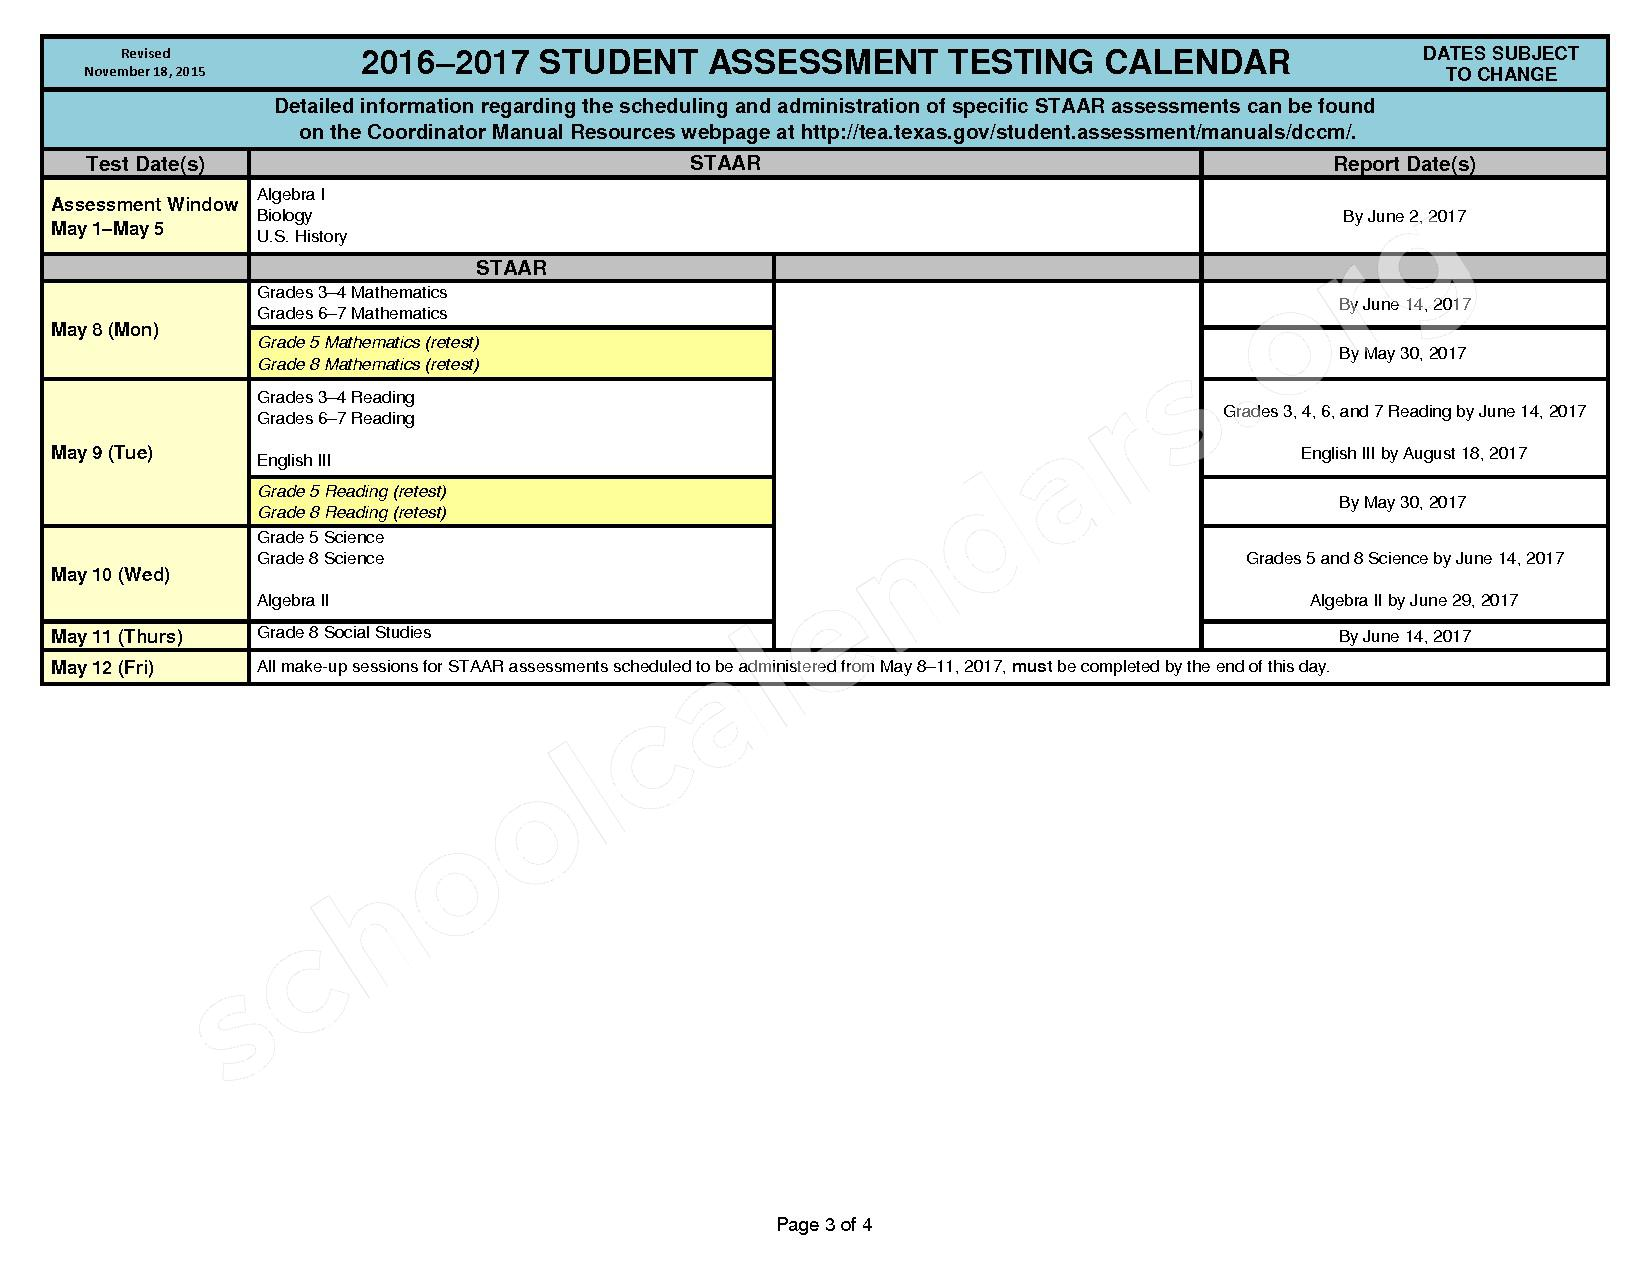 2016 - 2017 State Testing Calendar – Crosby Independent School District – page 3